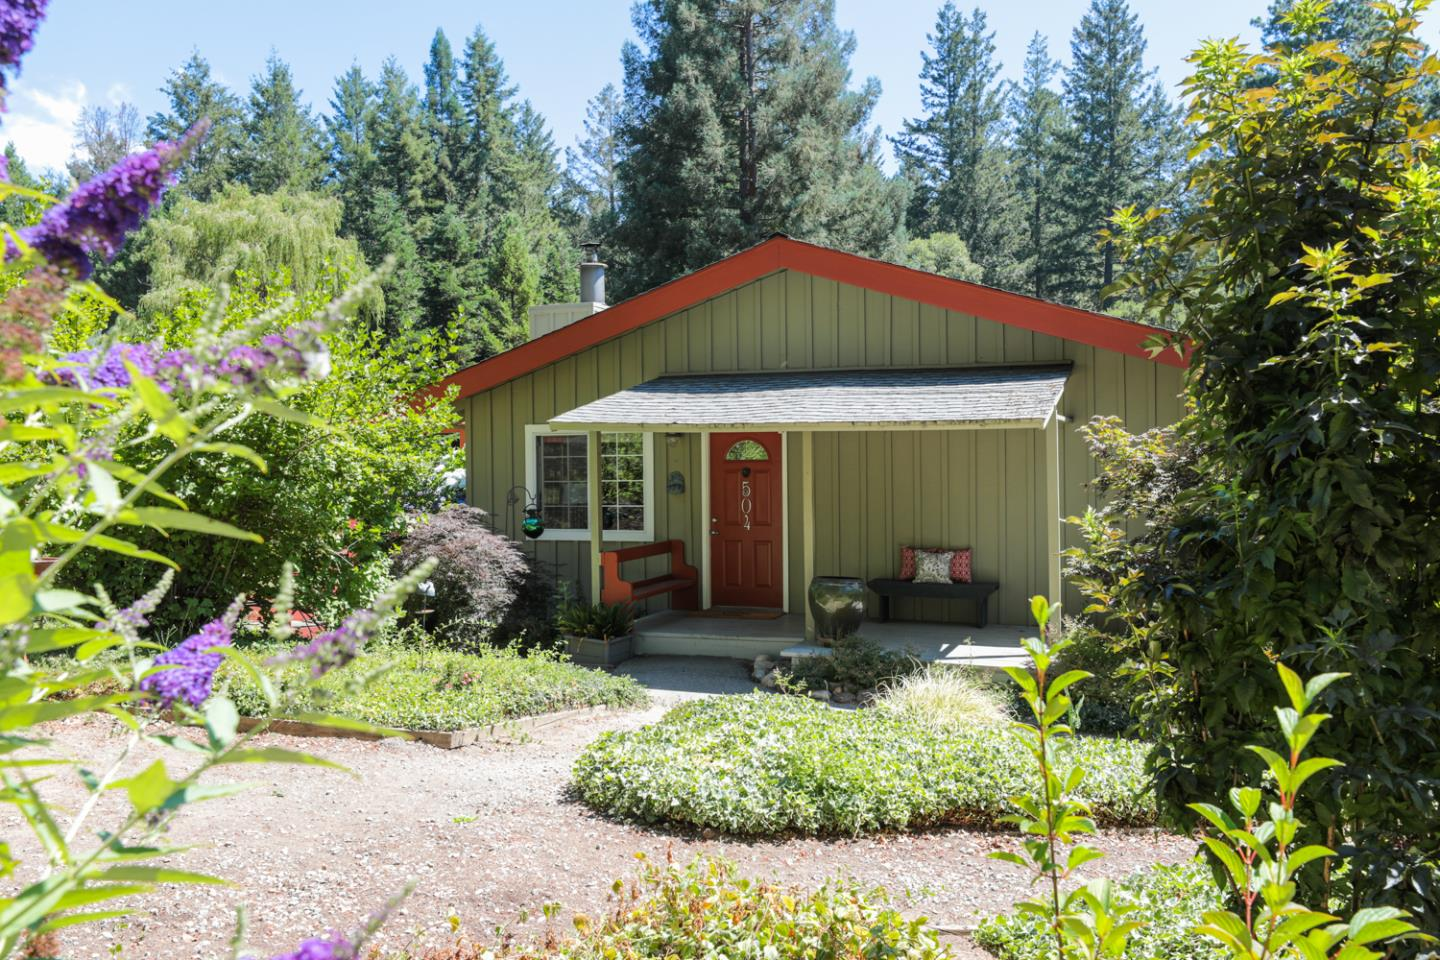 This home offers privacy & tranquility on 1.35 sun drenched acres in Bonny Doon. This treasure is more than a home, it is a lifestyle. The darling 2-bed/1-bath single level home sits proudly among a plethora of lovingly tended fruit trees, vines, flowers & vegetable gardens. This 1,084 sq ft, open ceiling home has been tastefully updated. The gourmet kitchen features blue tile floor which complements the earth toned granite slab countertops & natural wood stained cabinets. Its equipped with a Wolf stainless-steel gas range & electric oven. Several skylights allow natural light to enter the home & the white-washed walls & ceilings has a fresh & welcoming feeling. The outdoor deck has lots of area to play and explore for children & adults. The large wooden deck & pergola is perfect for relaxing & barbecues  in the late afternoon sun. Playhouse with swings & a slide, a horseshoe pit is just the beginning of things to do! Bonny Doon school is just down the street. Minutes to the coast.